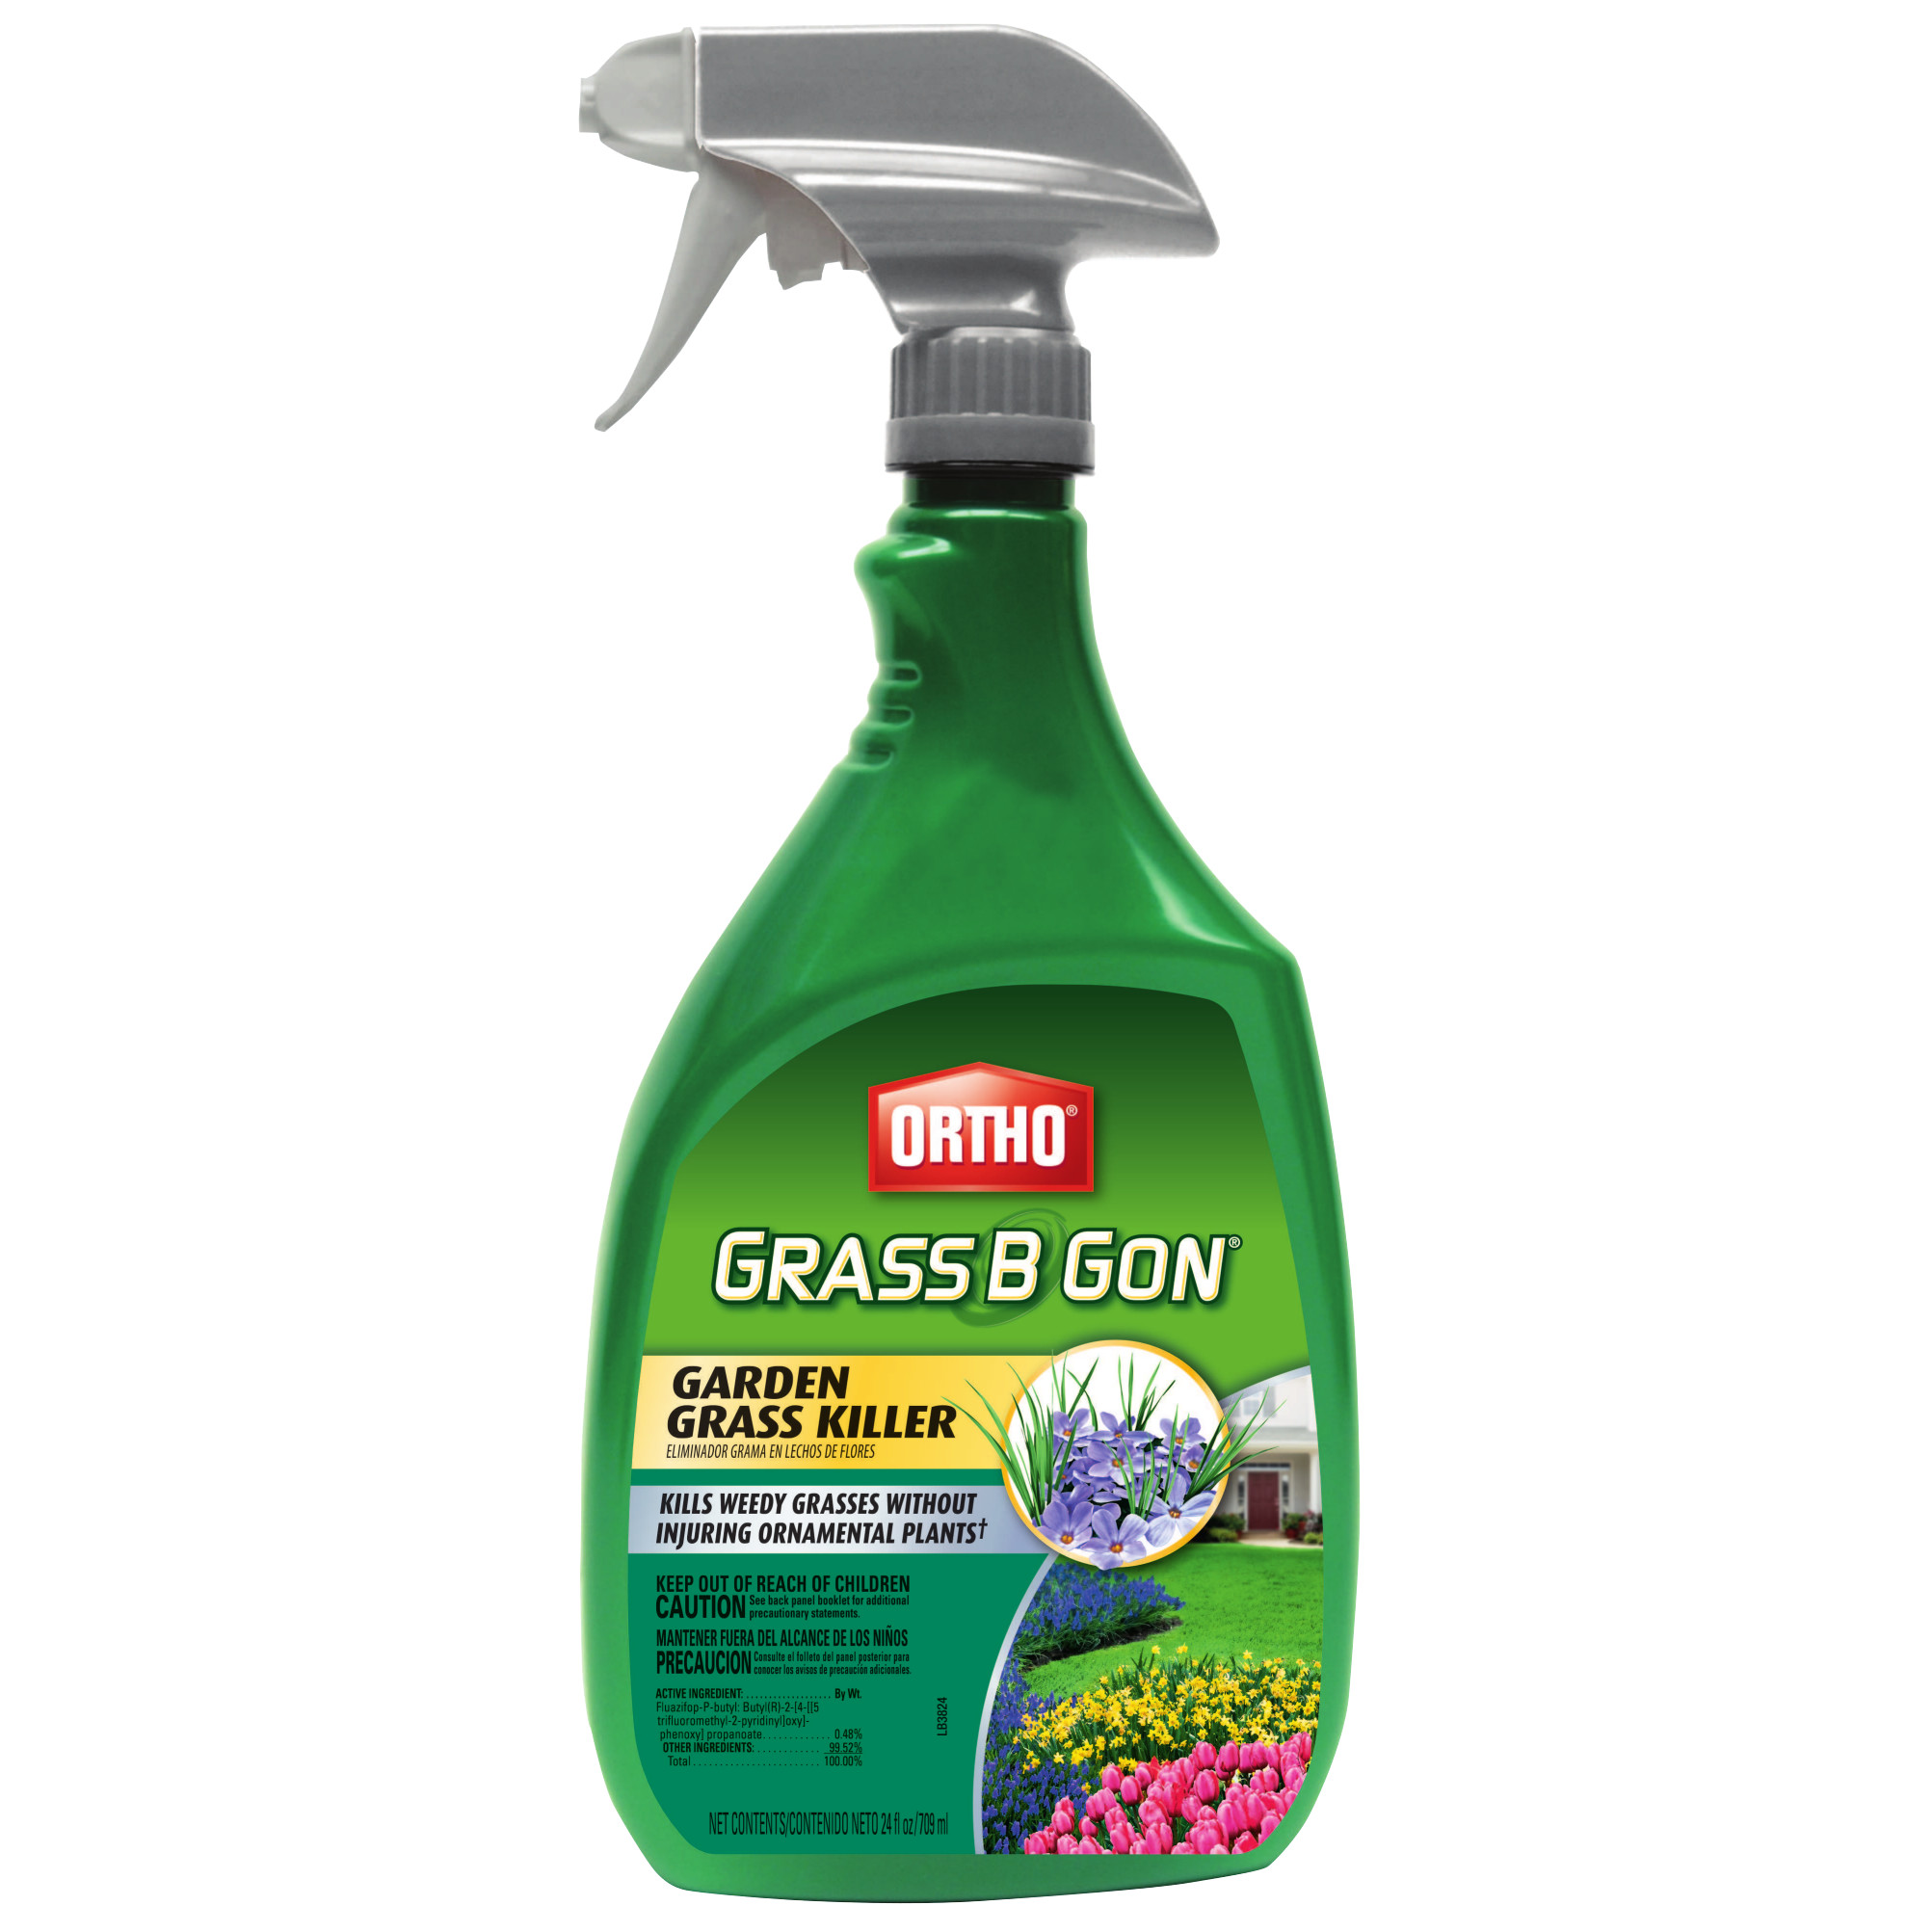 copy make to grass killing vinegar spray good an for gardens killerartboard killer and easy weed how vegetable cheap garden thing one ingredient white